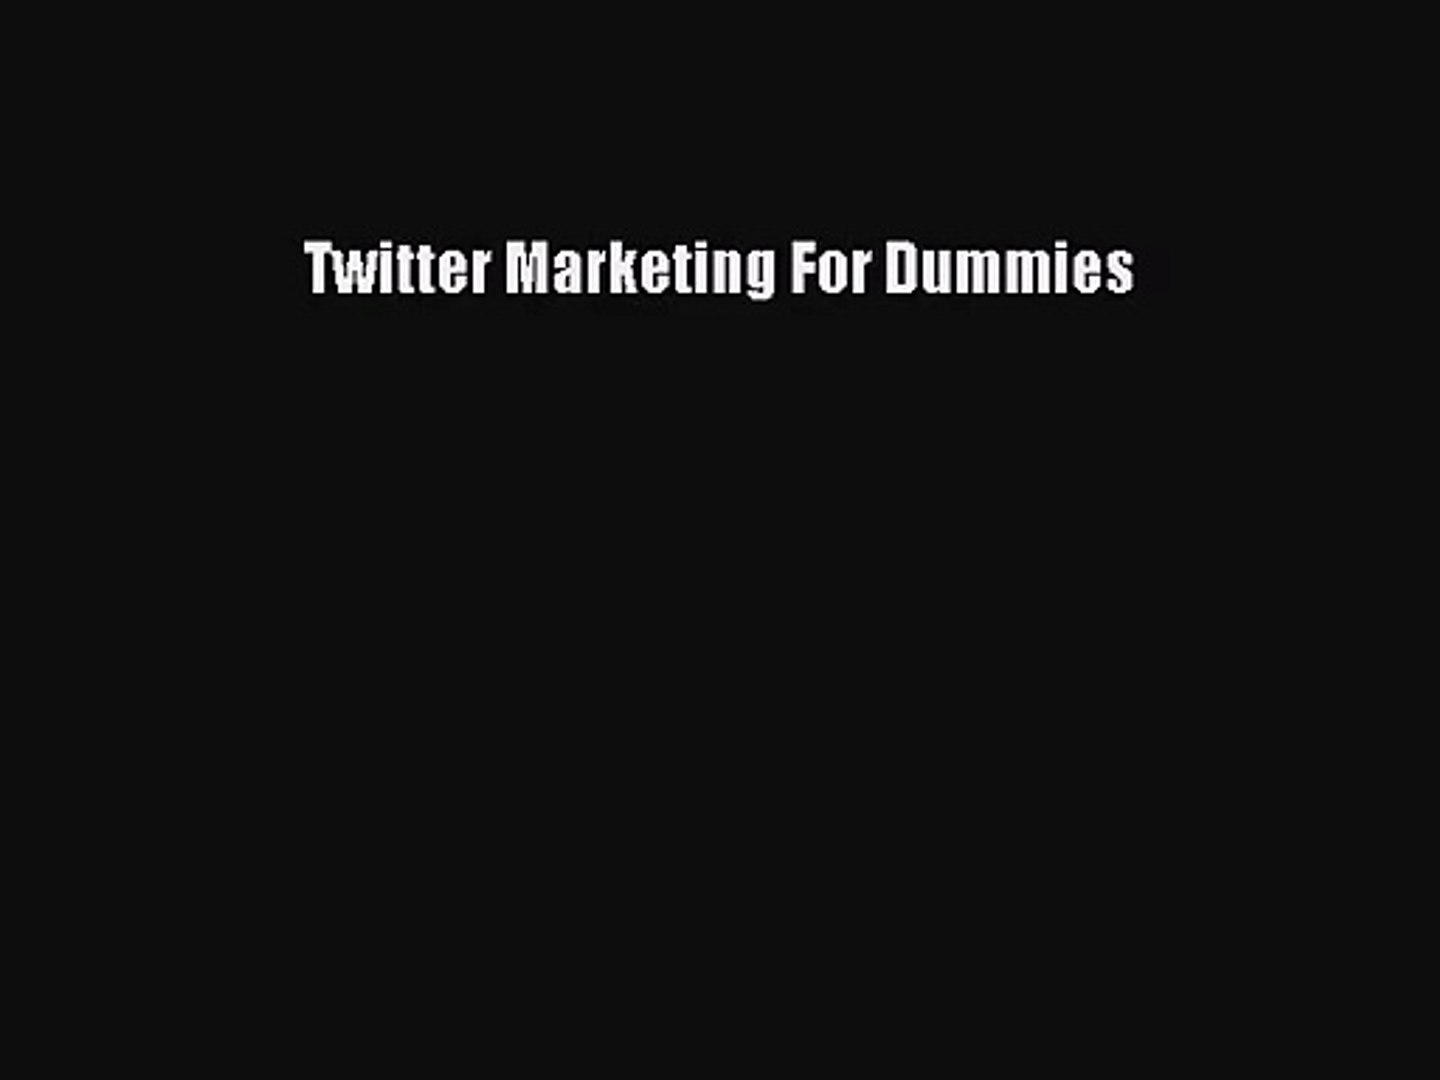 Twitter Marketing For Dummies has been added